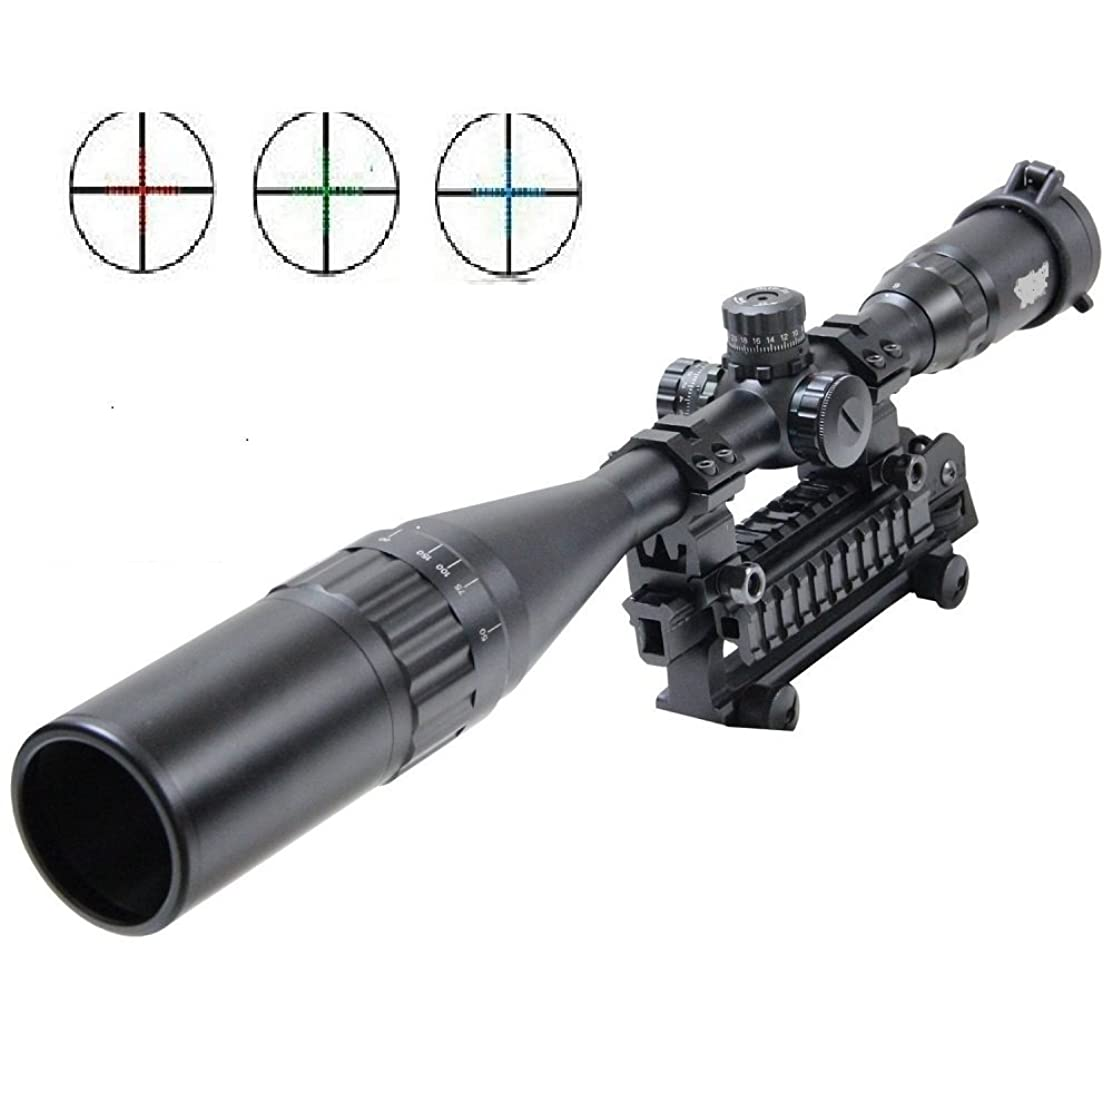 UUQ 4-16X50 & 6-24X50 AOL Hunting Rifle Scope W/Front AO Adjustment, Red/Blue/Green Mil-dot Reticle, Heavy Duty Ring Mounts & Flip Up Scope Covers & Extended Sunshade